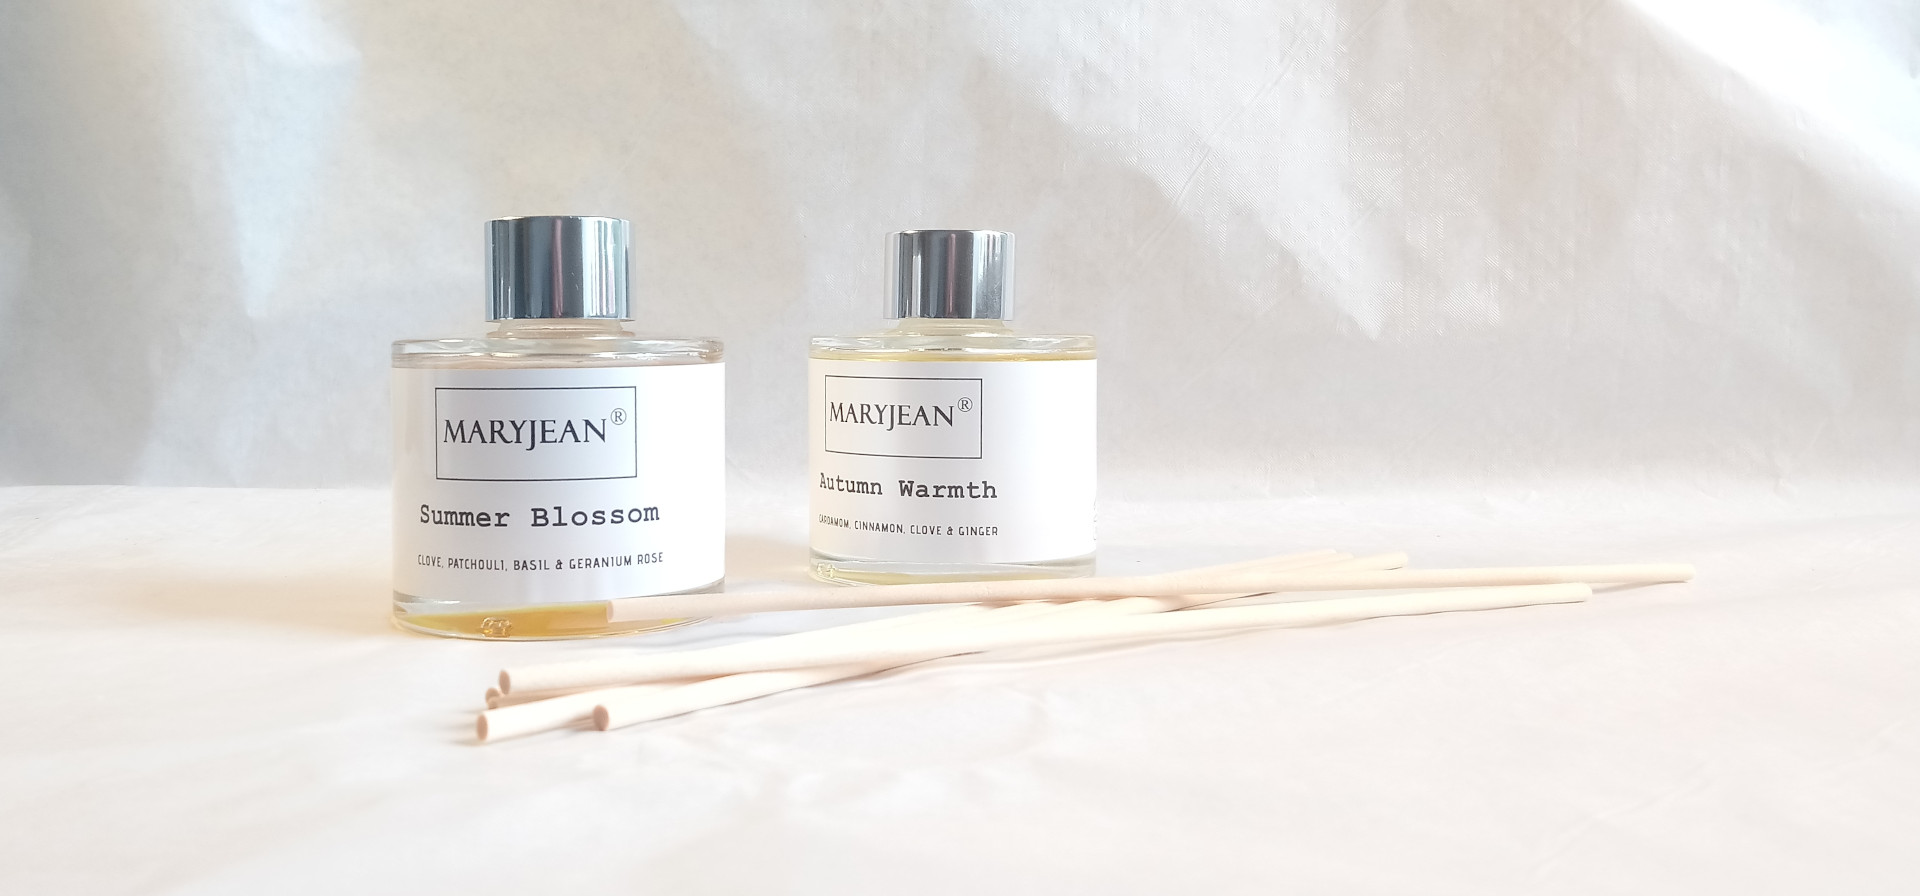 Natural Home Season's Summer And Autumn Fragrance Handmade Luxury Reed Diffusers Twin 2 Pack en_GB